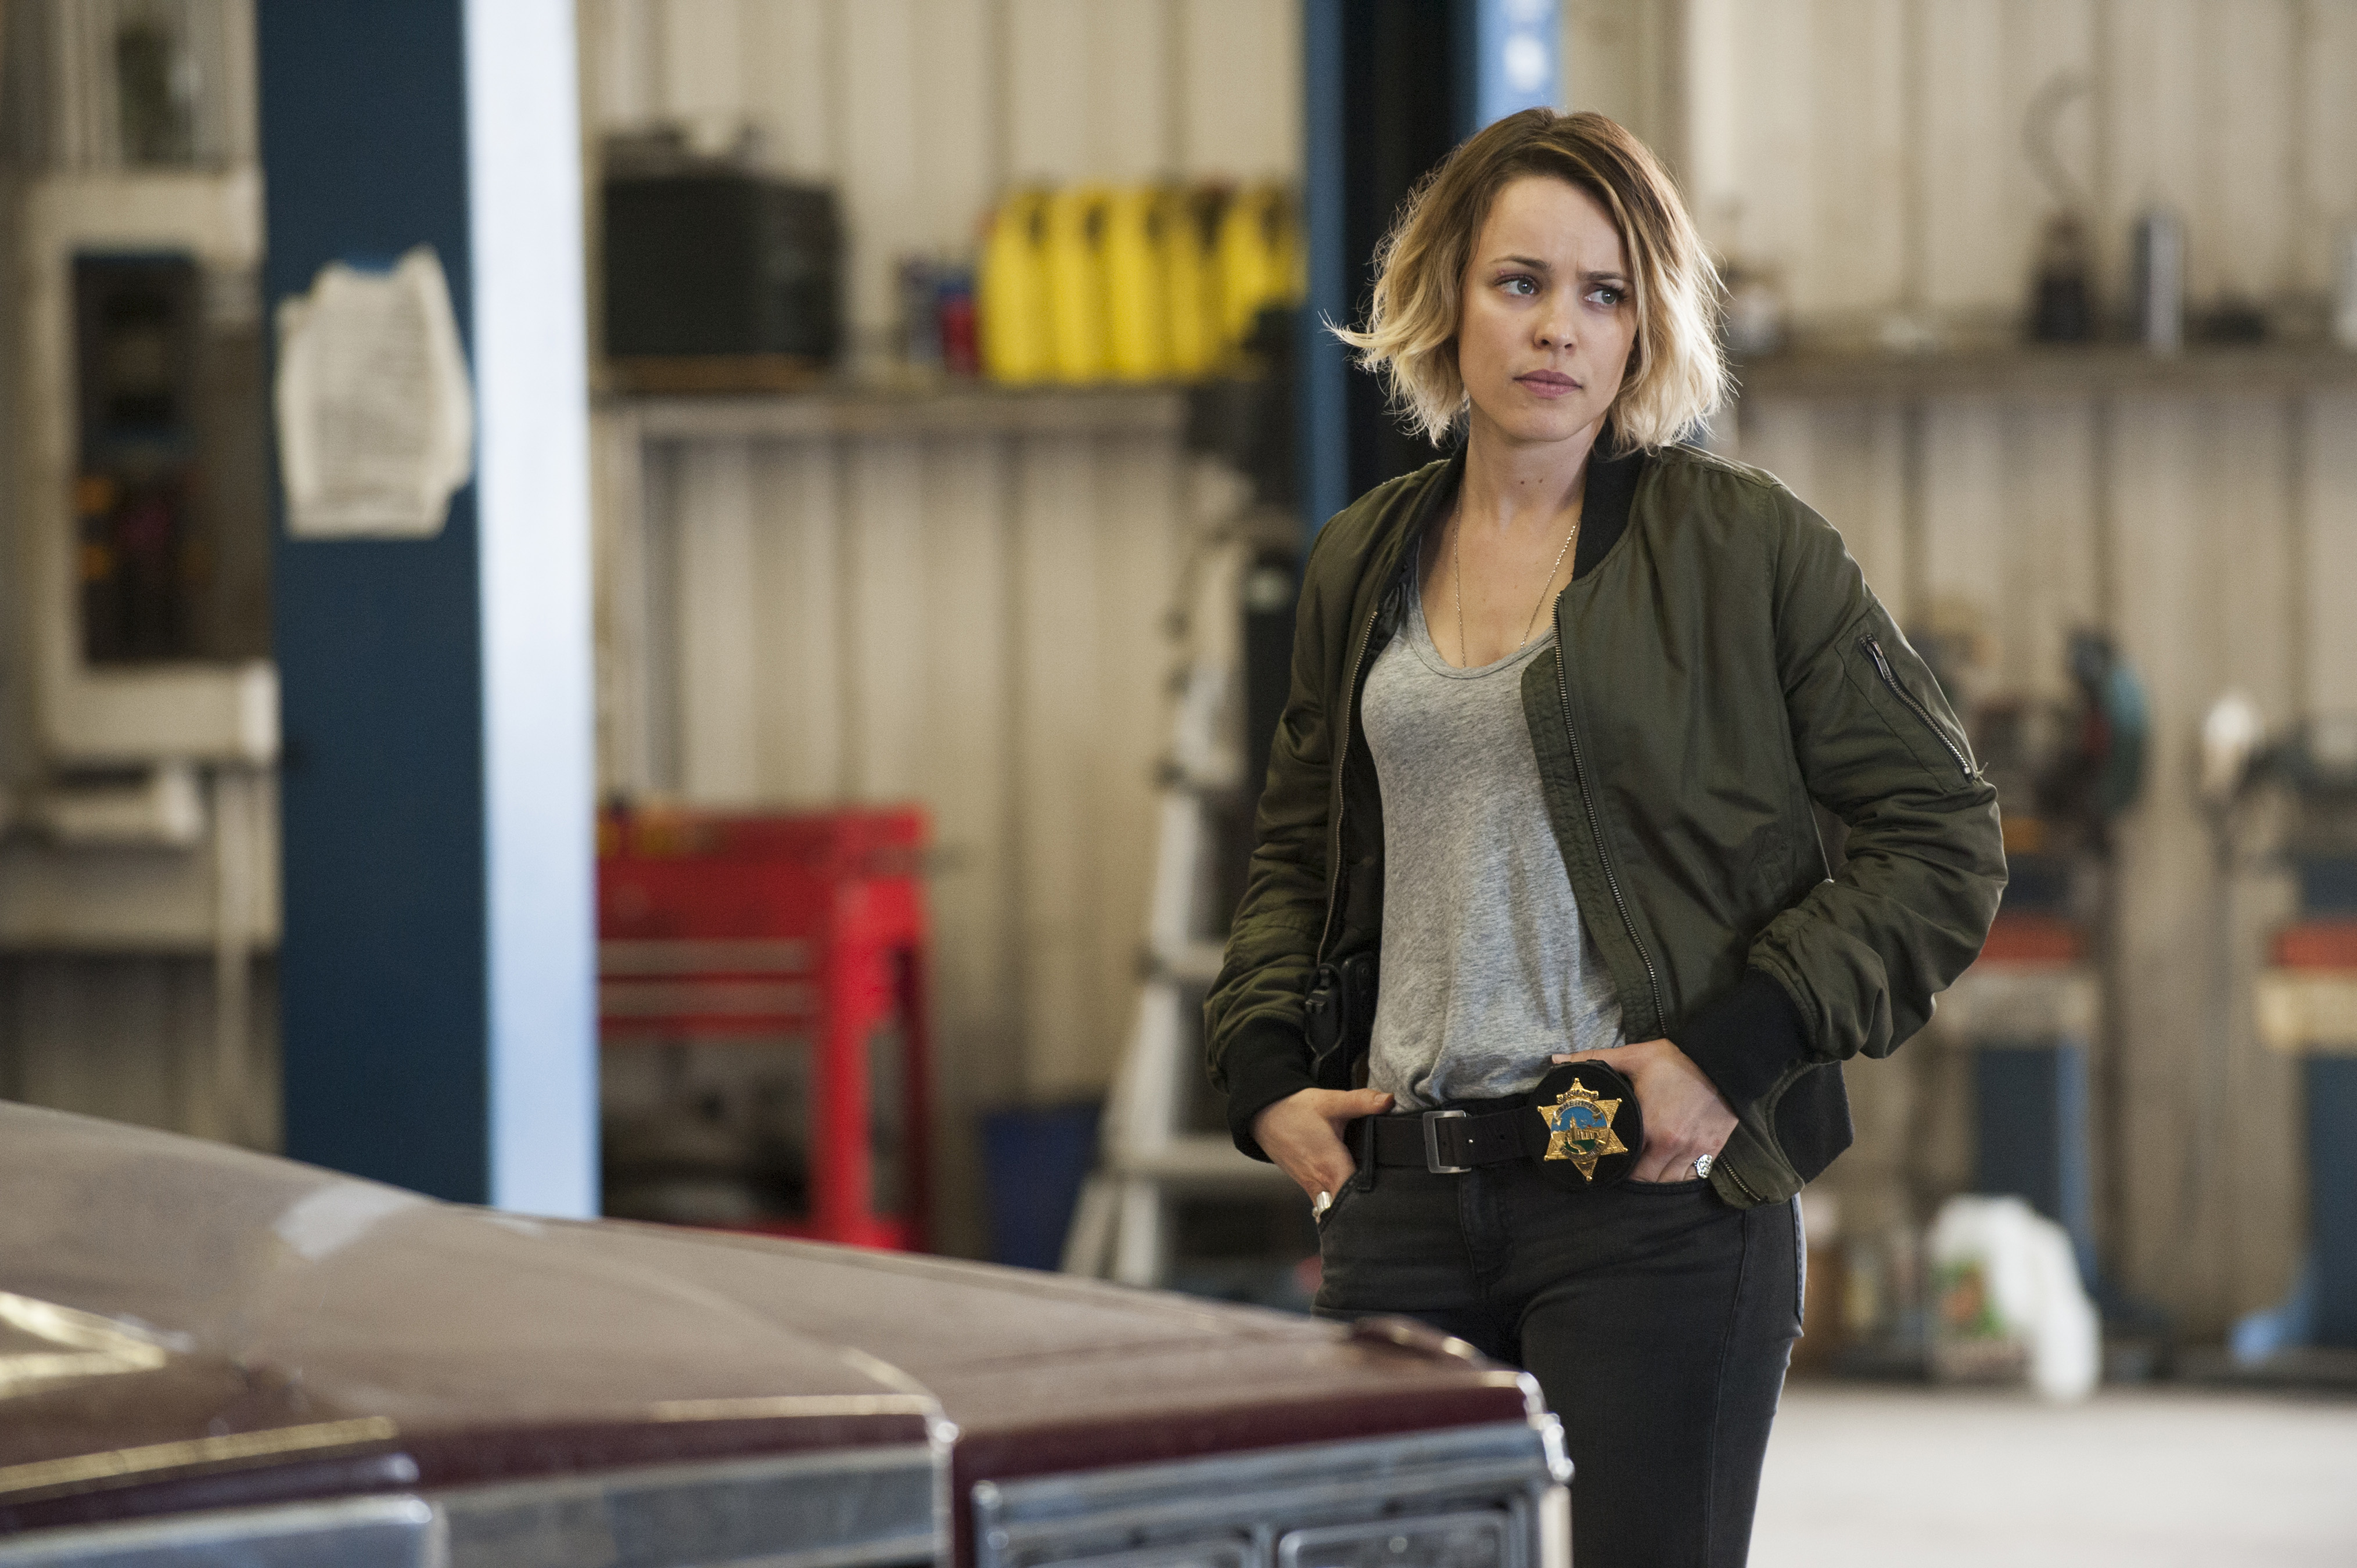 gender roles in the tv show true detective A brief tv history of the supernatural detective ashley warren 12 the show lost steam after answering that question reversing traditional gender roles.